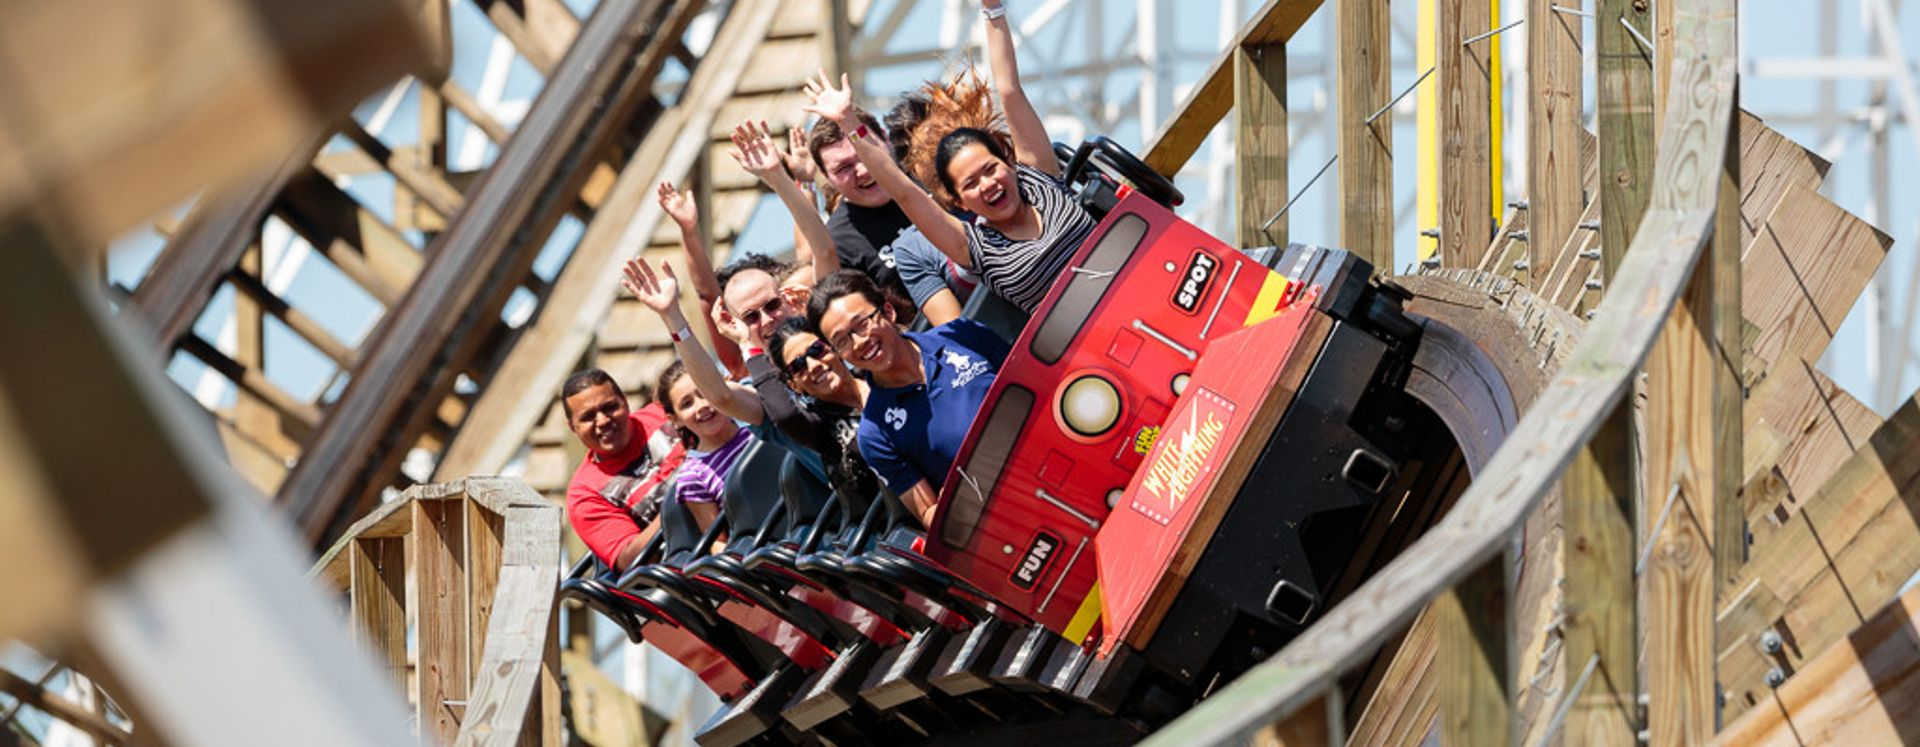 A wooden roller coaster with people laughing at Fun Spot Orlando